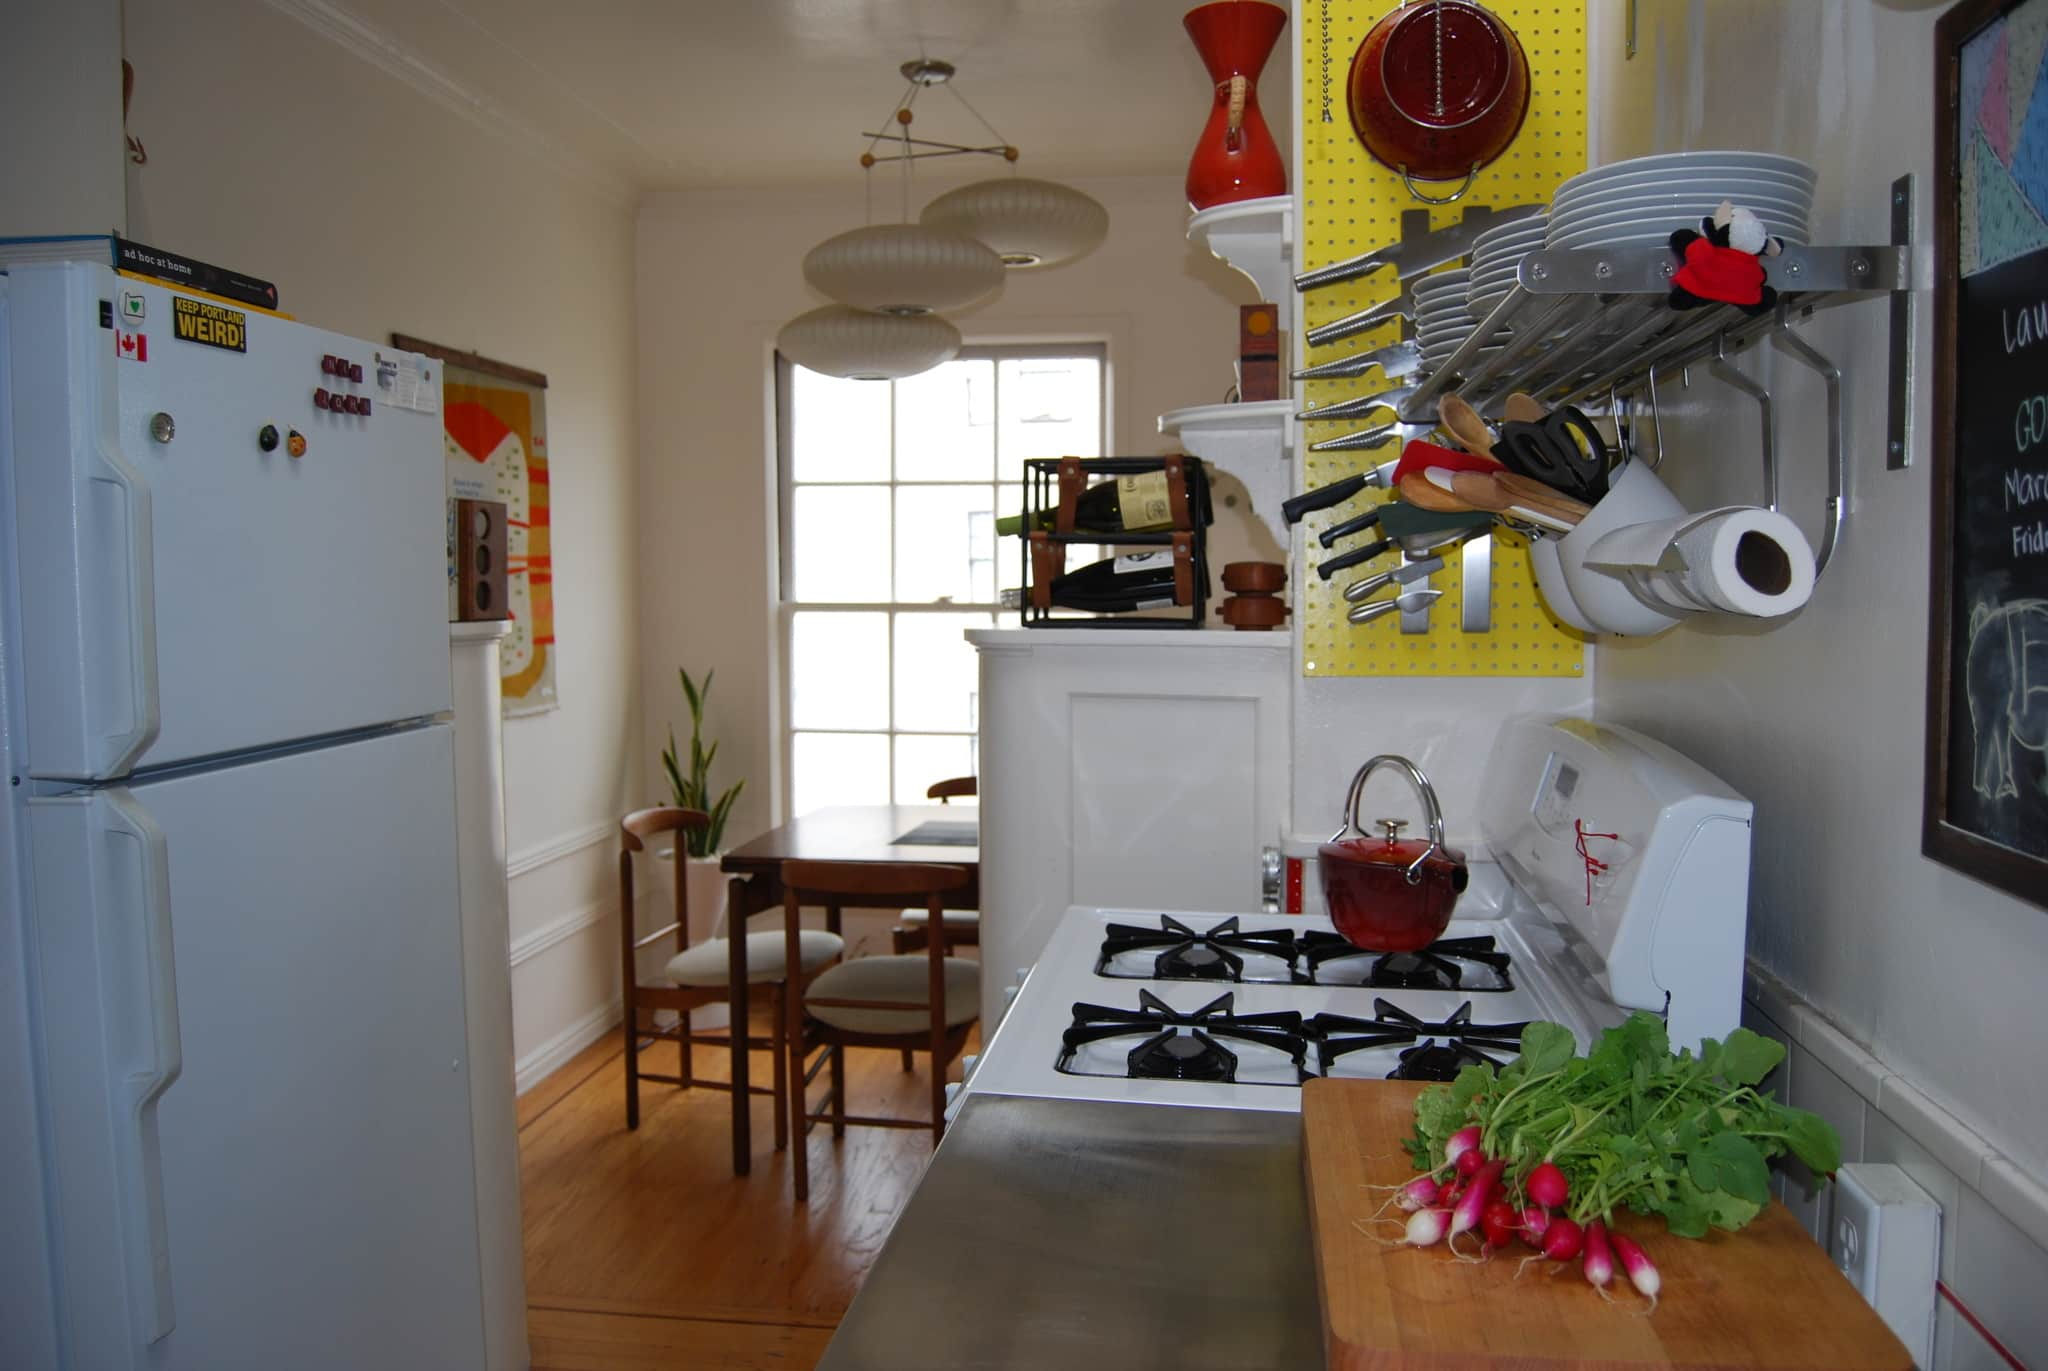 Nikki's San Francisco Kitchen with Character: gallery image 1